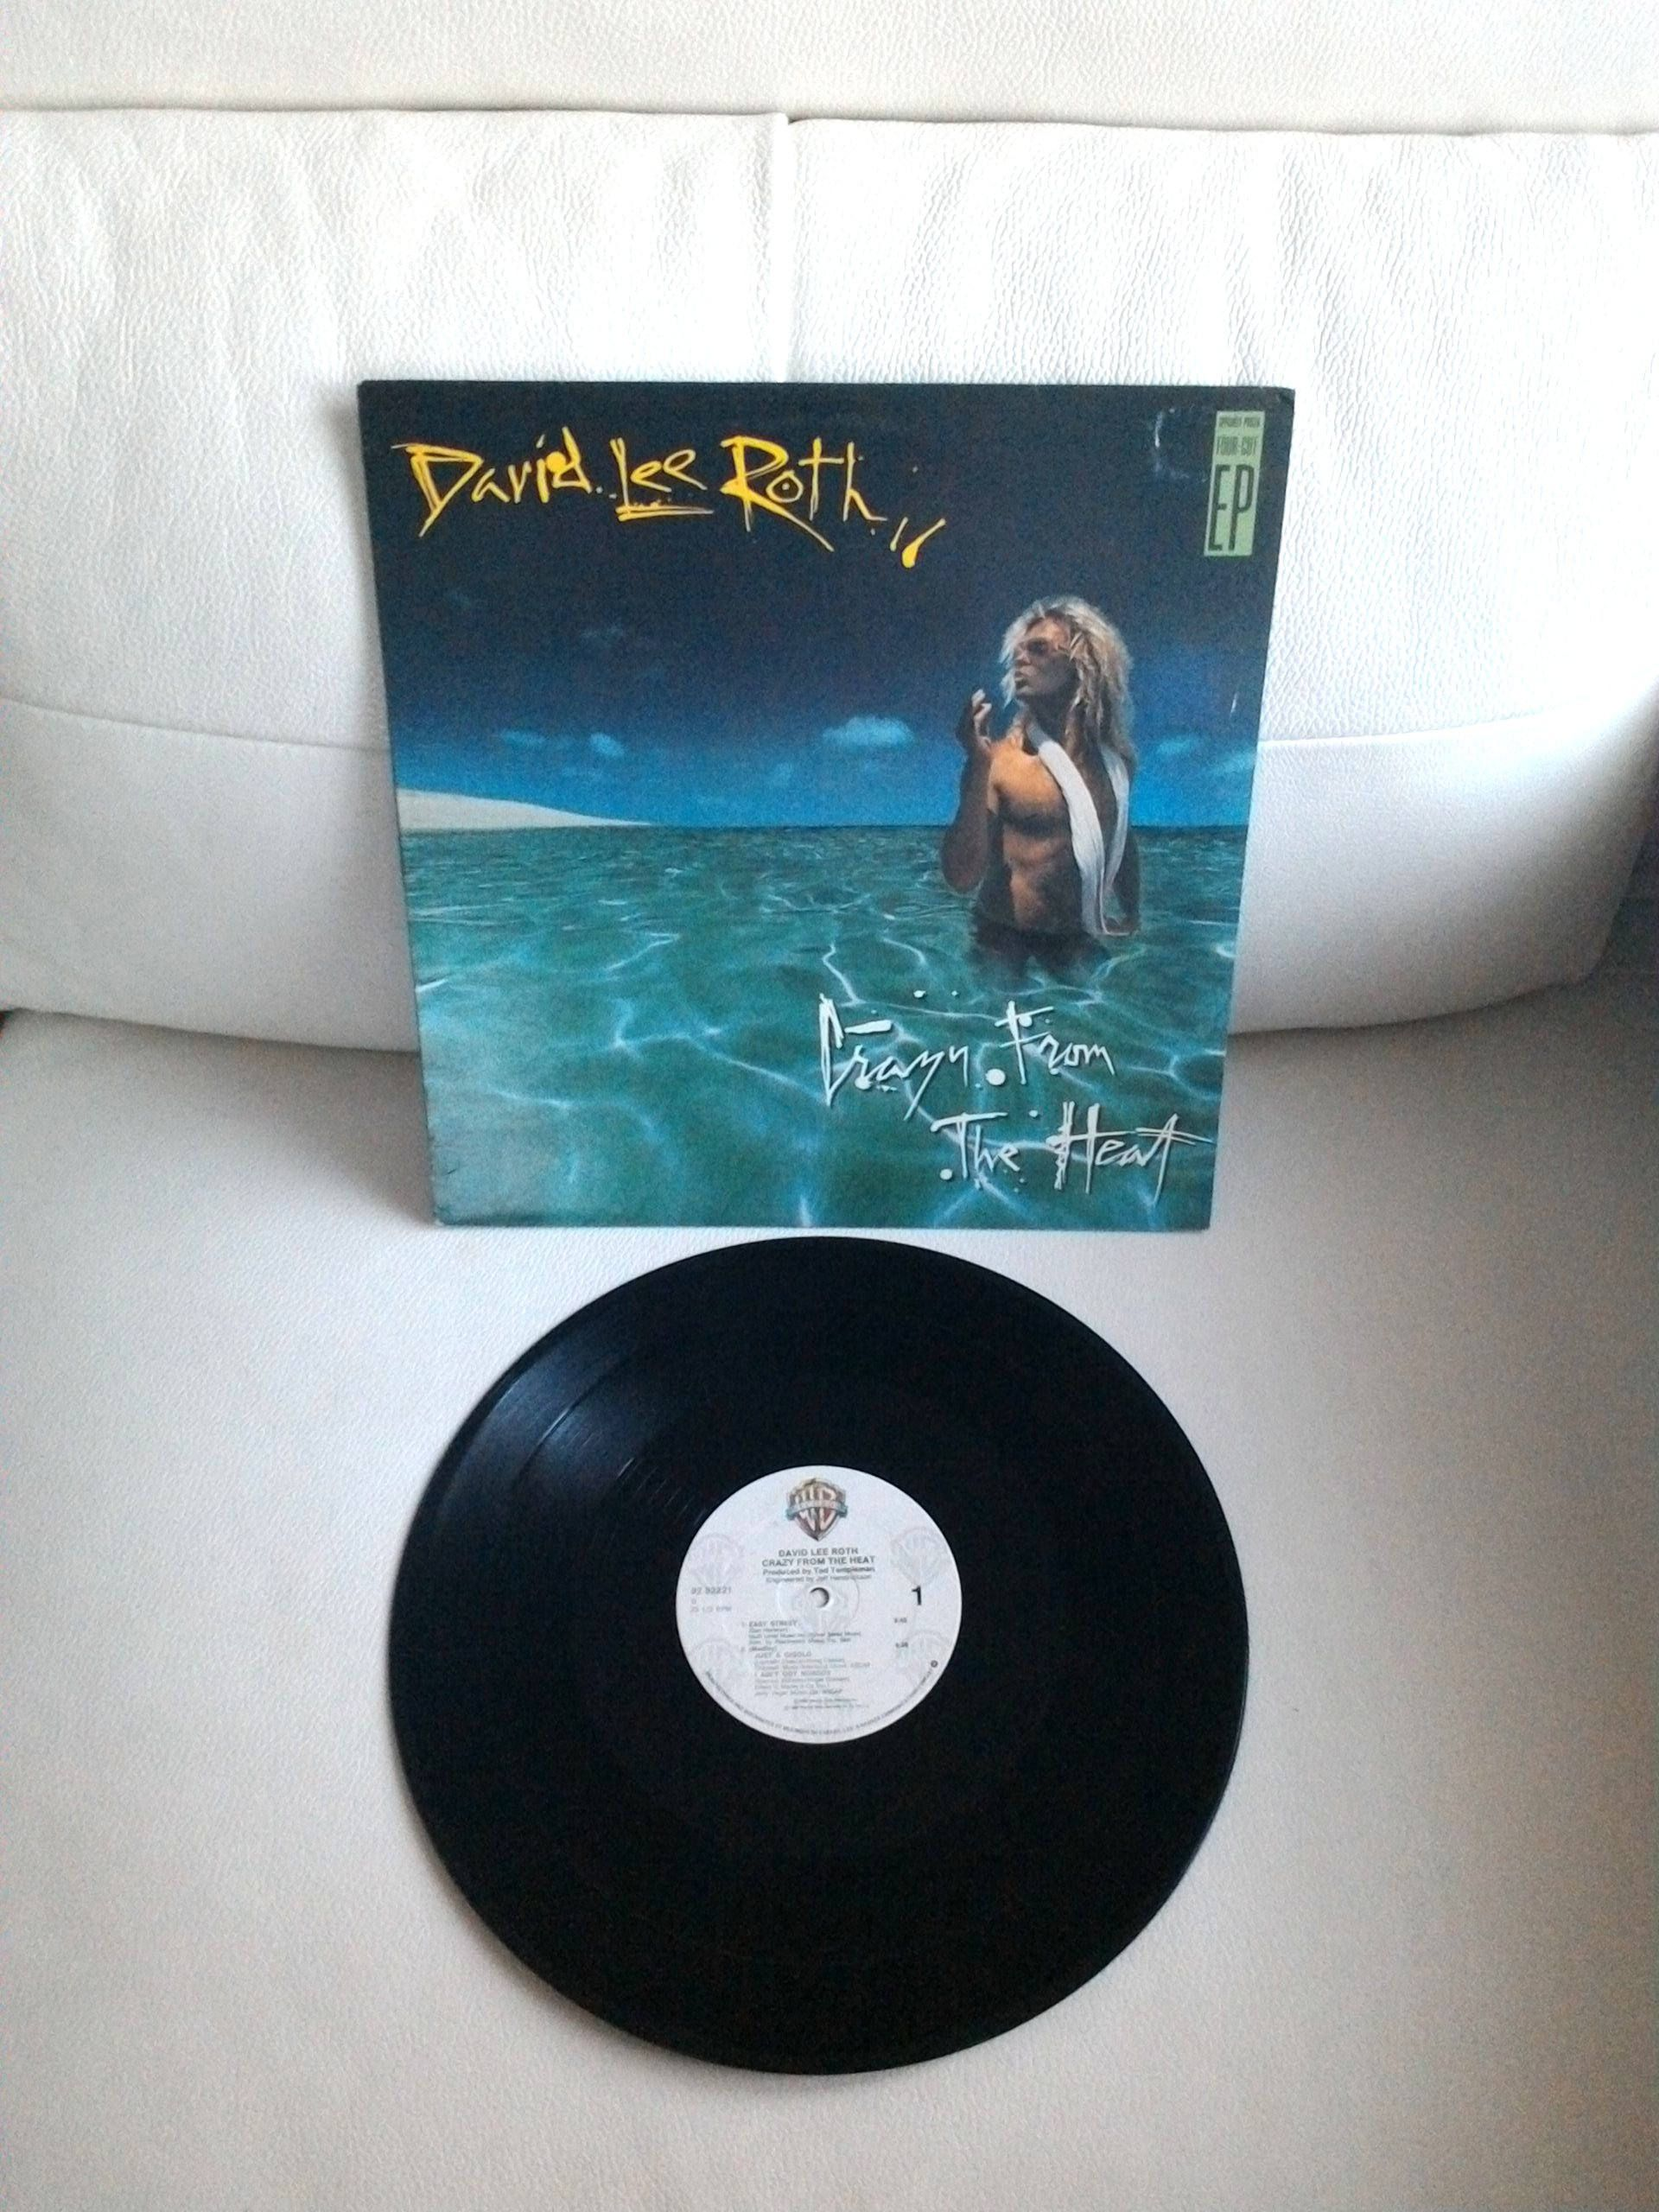 Vintage David Lee Roth Crazy From The Heat Vinyl 12 Single Etsy David Lee Roth Gigolo California Girls